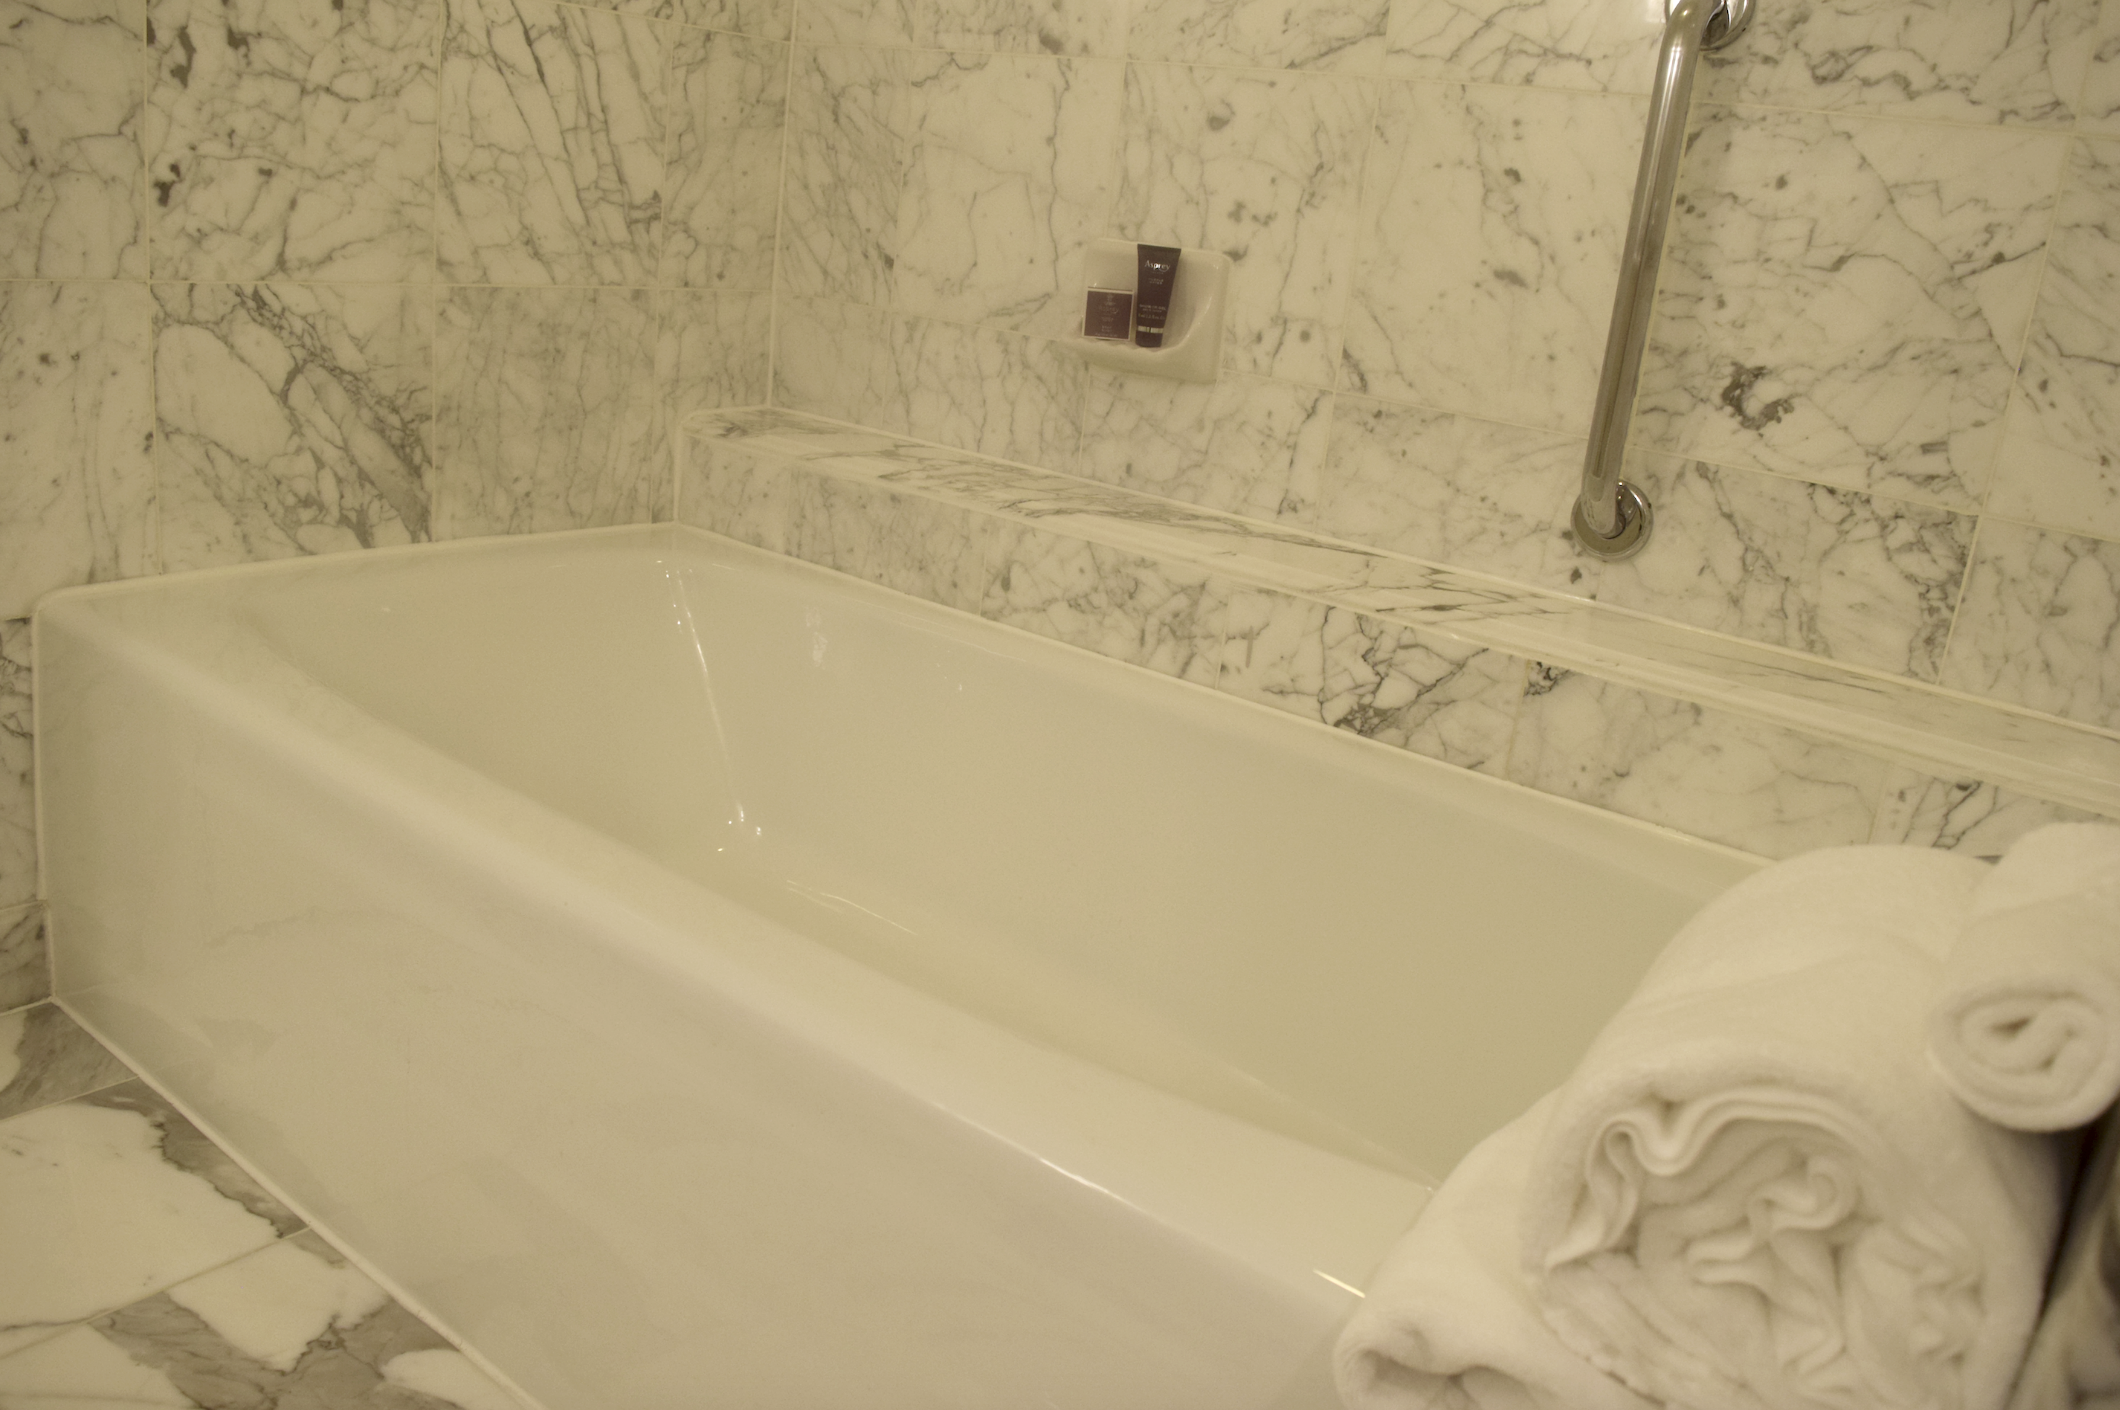 I enjoyed my long soak at this beautiful and luxurious marbled bathtub at The Ritz-Carlton, Pentagon City!